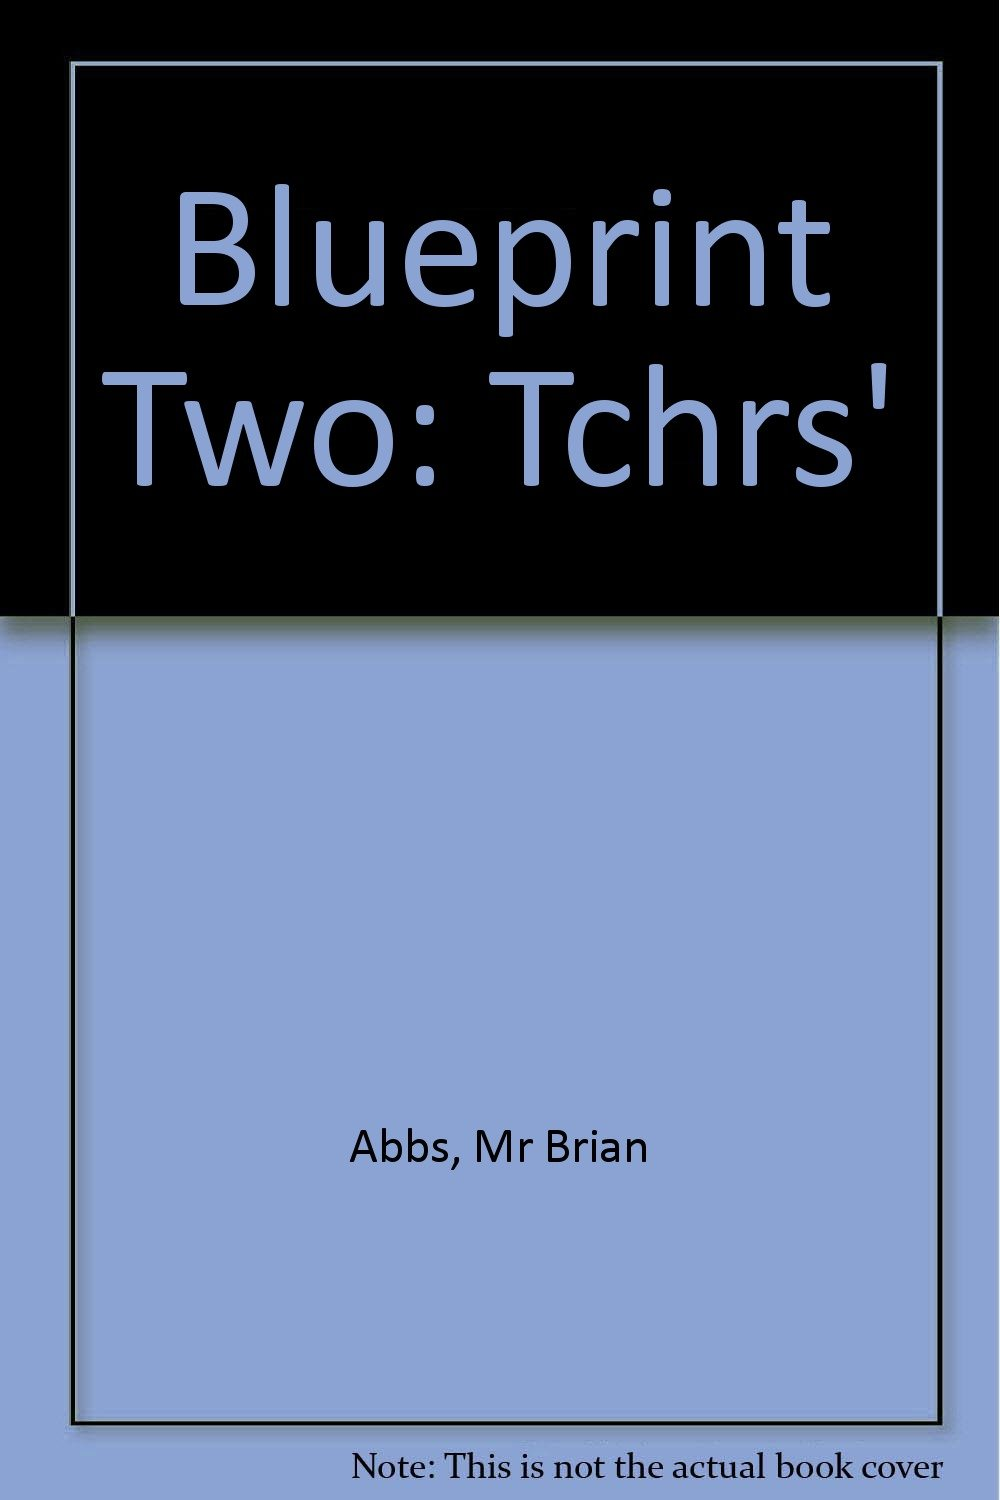 Blueprint teachers book 2 brian abbs ingrid freebairn blueprint teachers book 2 brian abbs ingrid freebairn 9780582075337 amazon books malvernweather